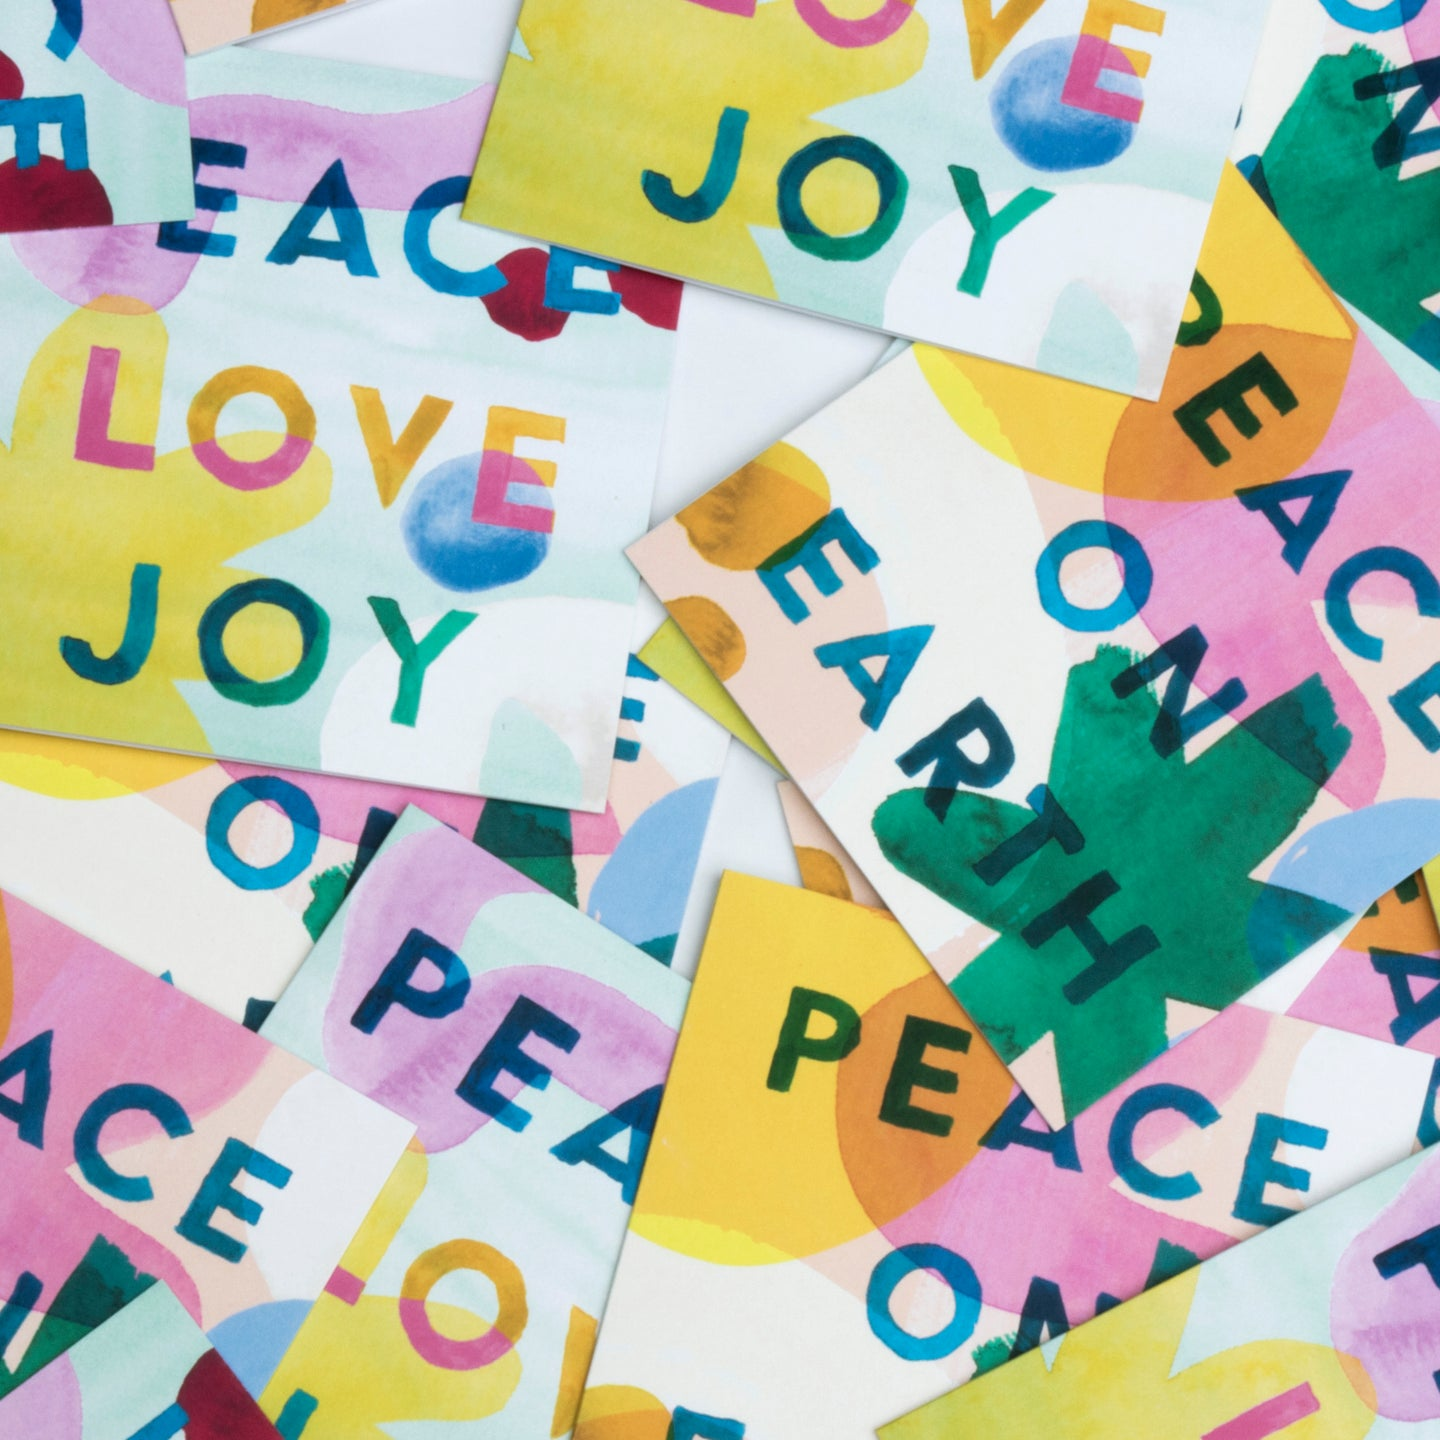 Artist print Holiday card set, colorful artist holiday card set, Peace on earth Holiday Card set, Peace love joy holiday card set, folded holiday card set